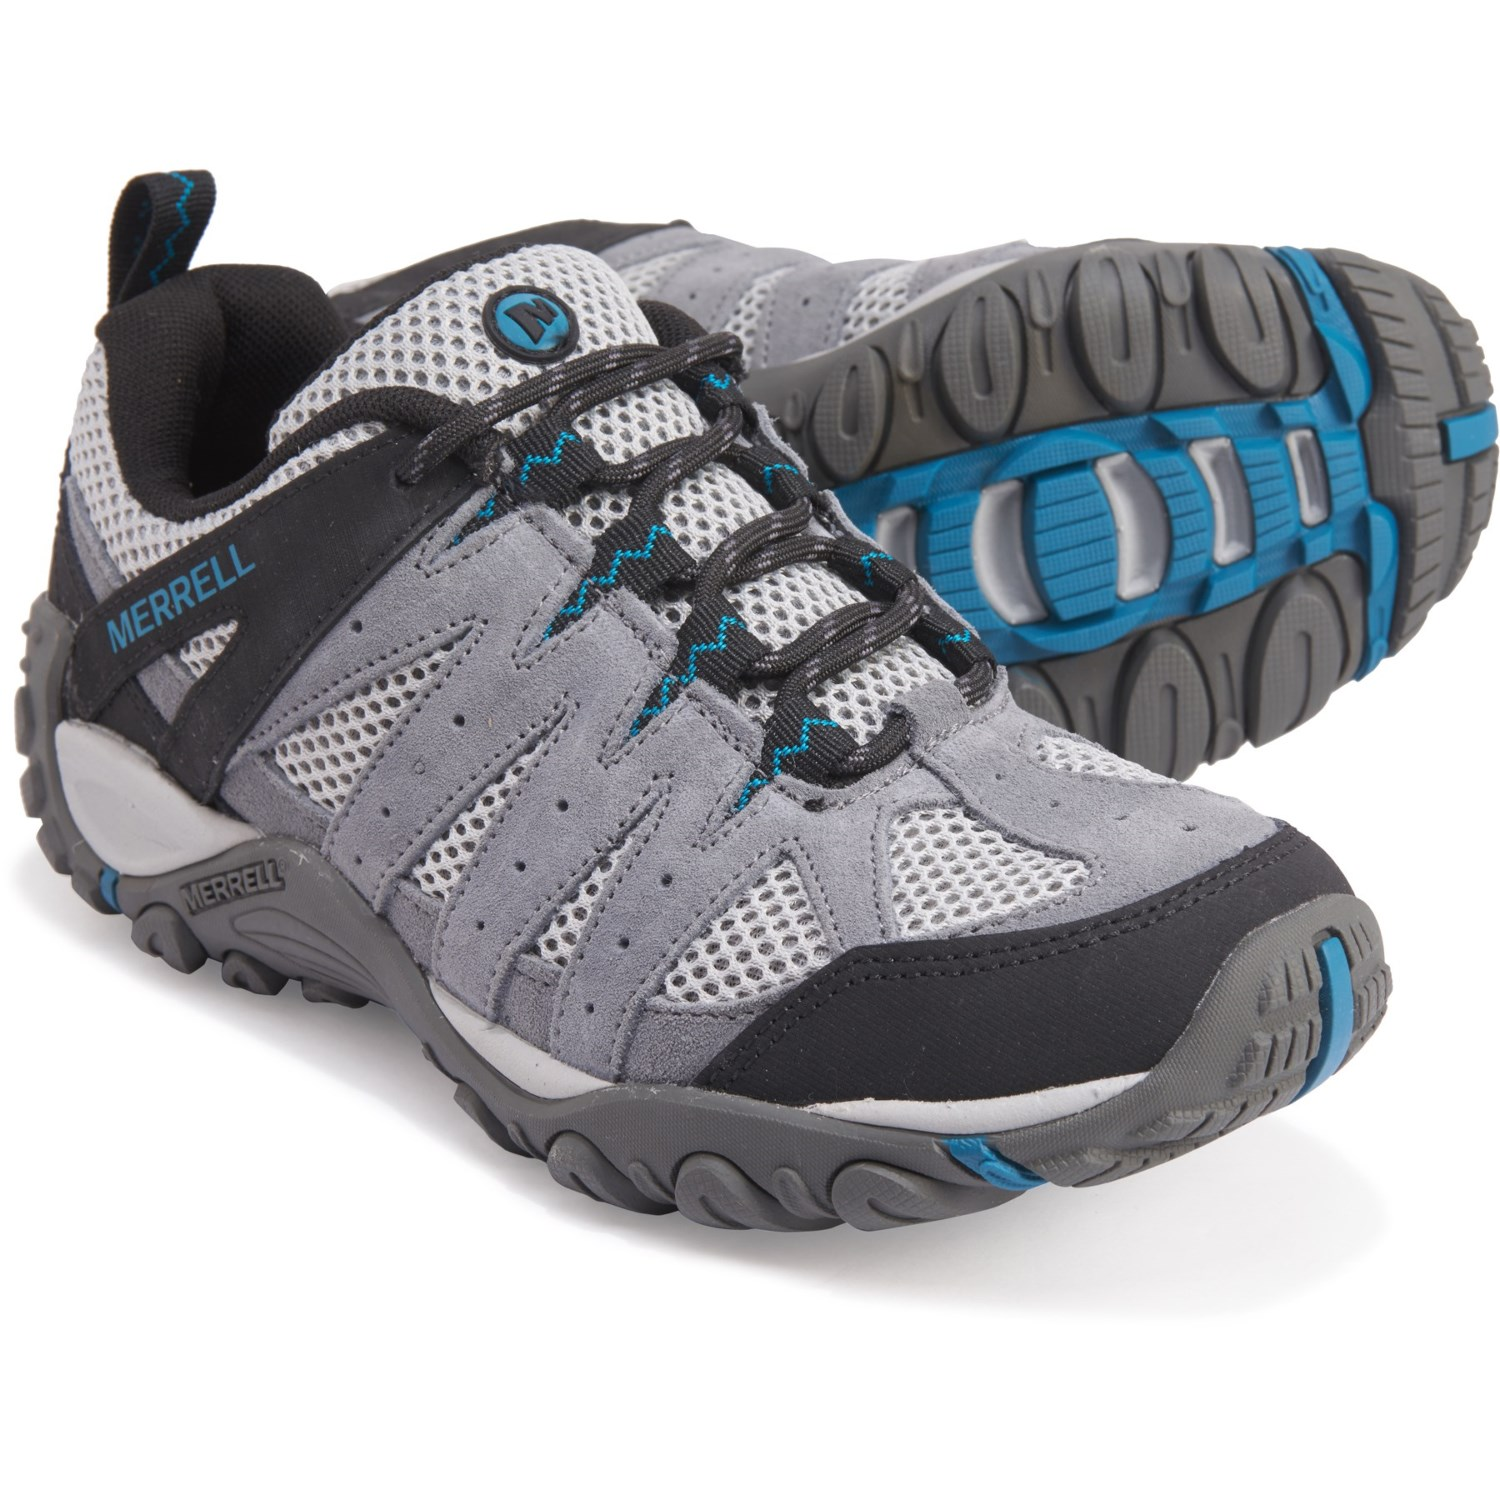 Merrell Accentor 2 Vent Hiking Shoes